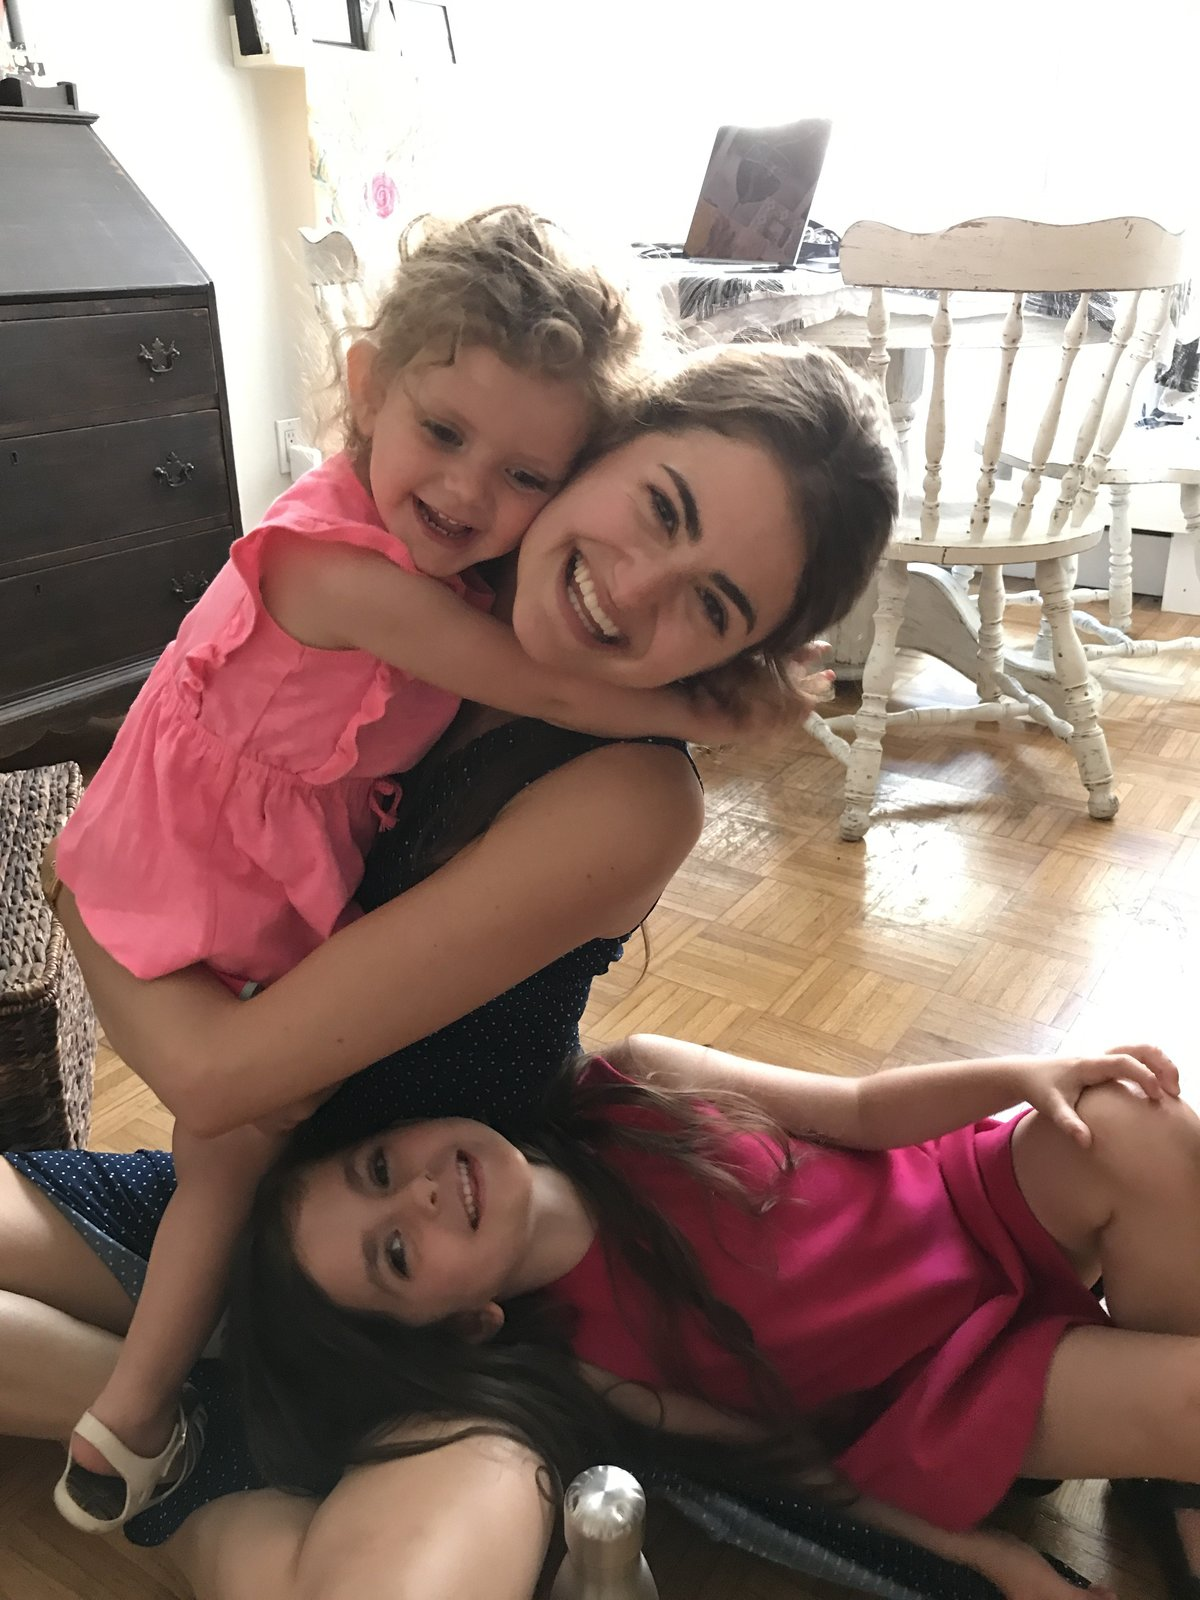 Laura Volpacchio hugs her client's children at her NYC studio.